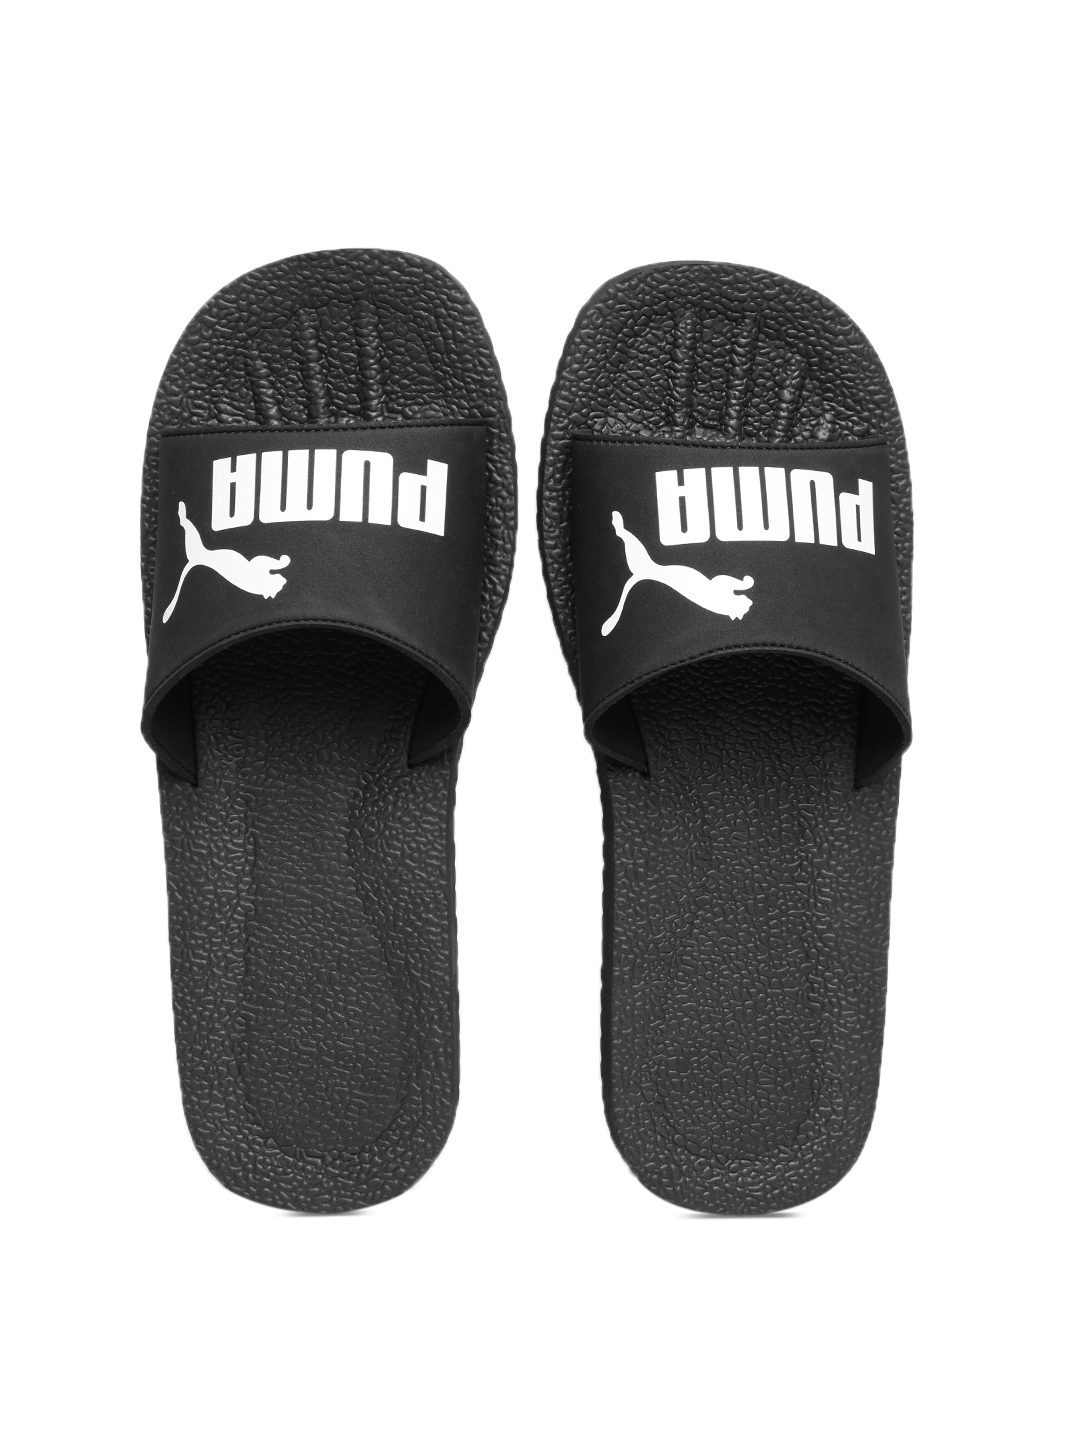 puma chappal price Online Shopping for